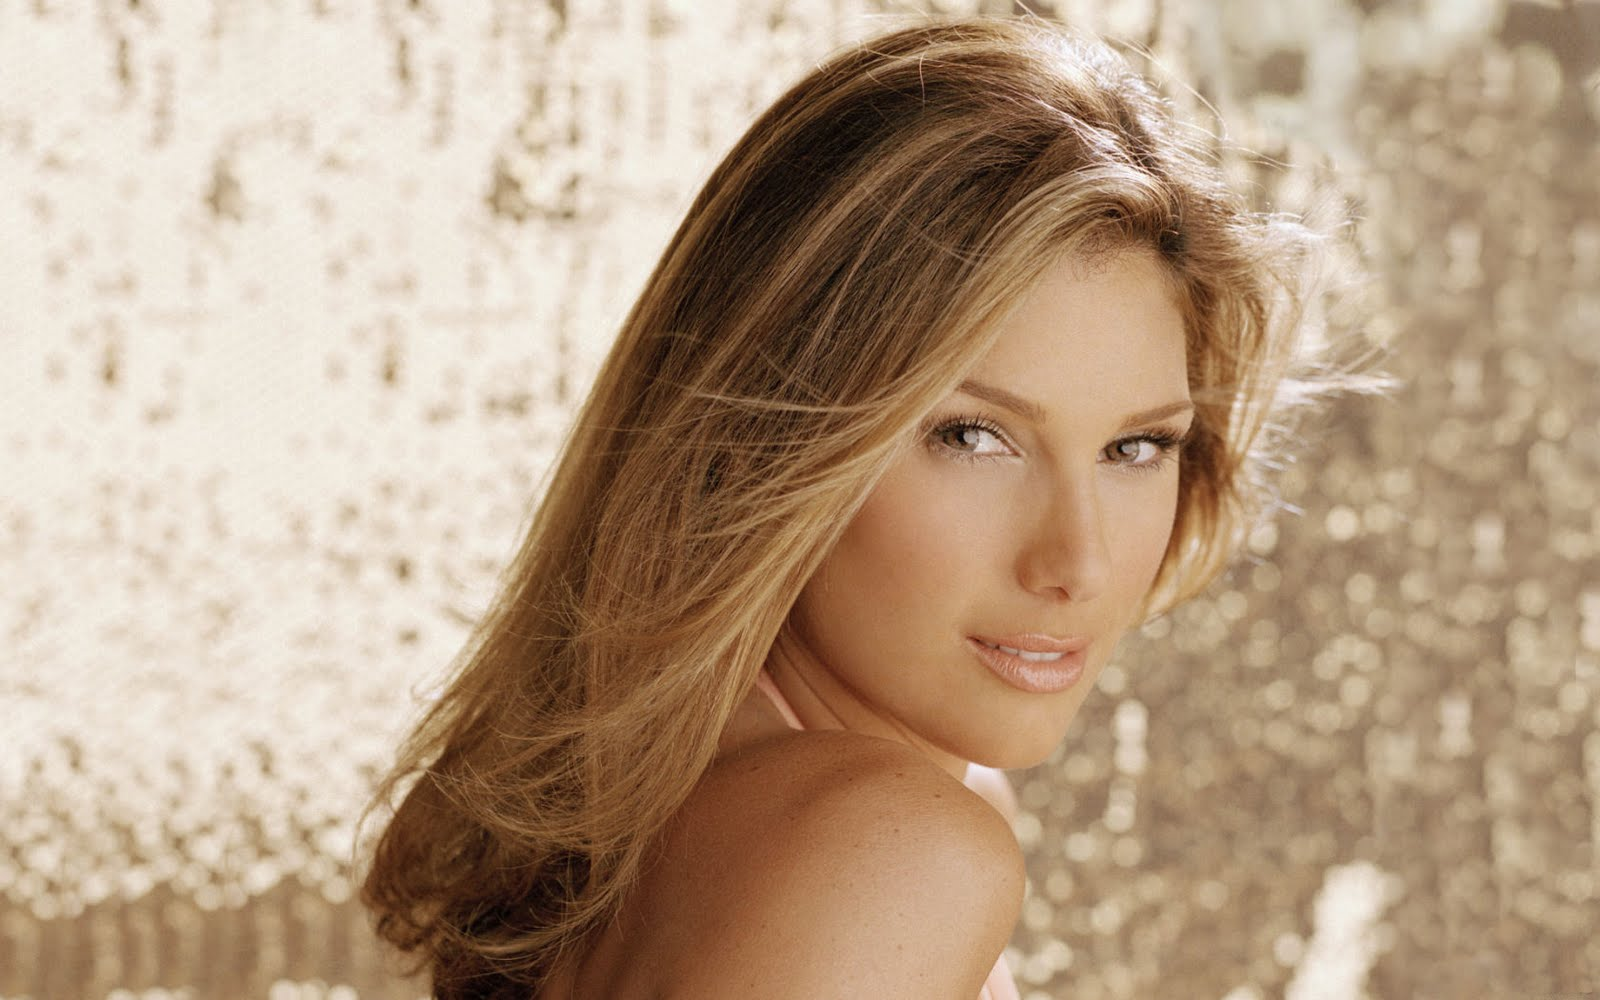 1600x1000 - Daisy Fuentes Wallpapers 6